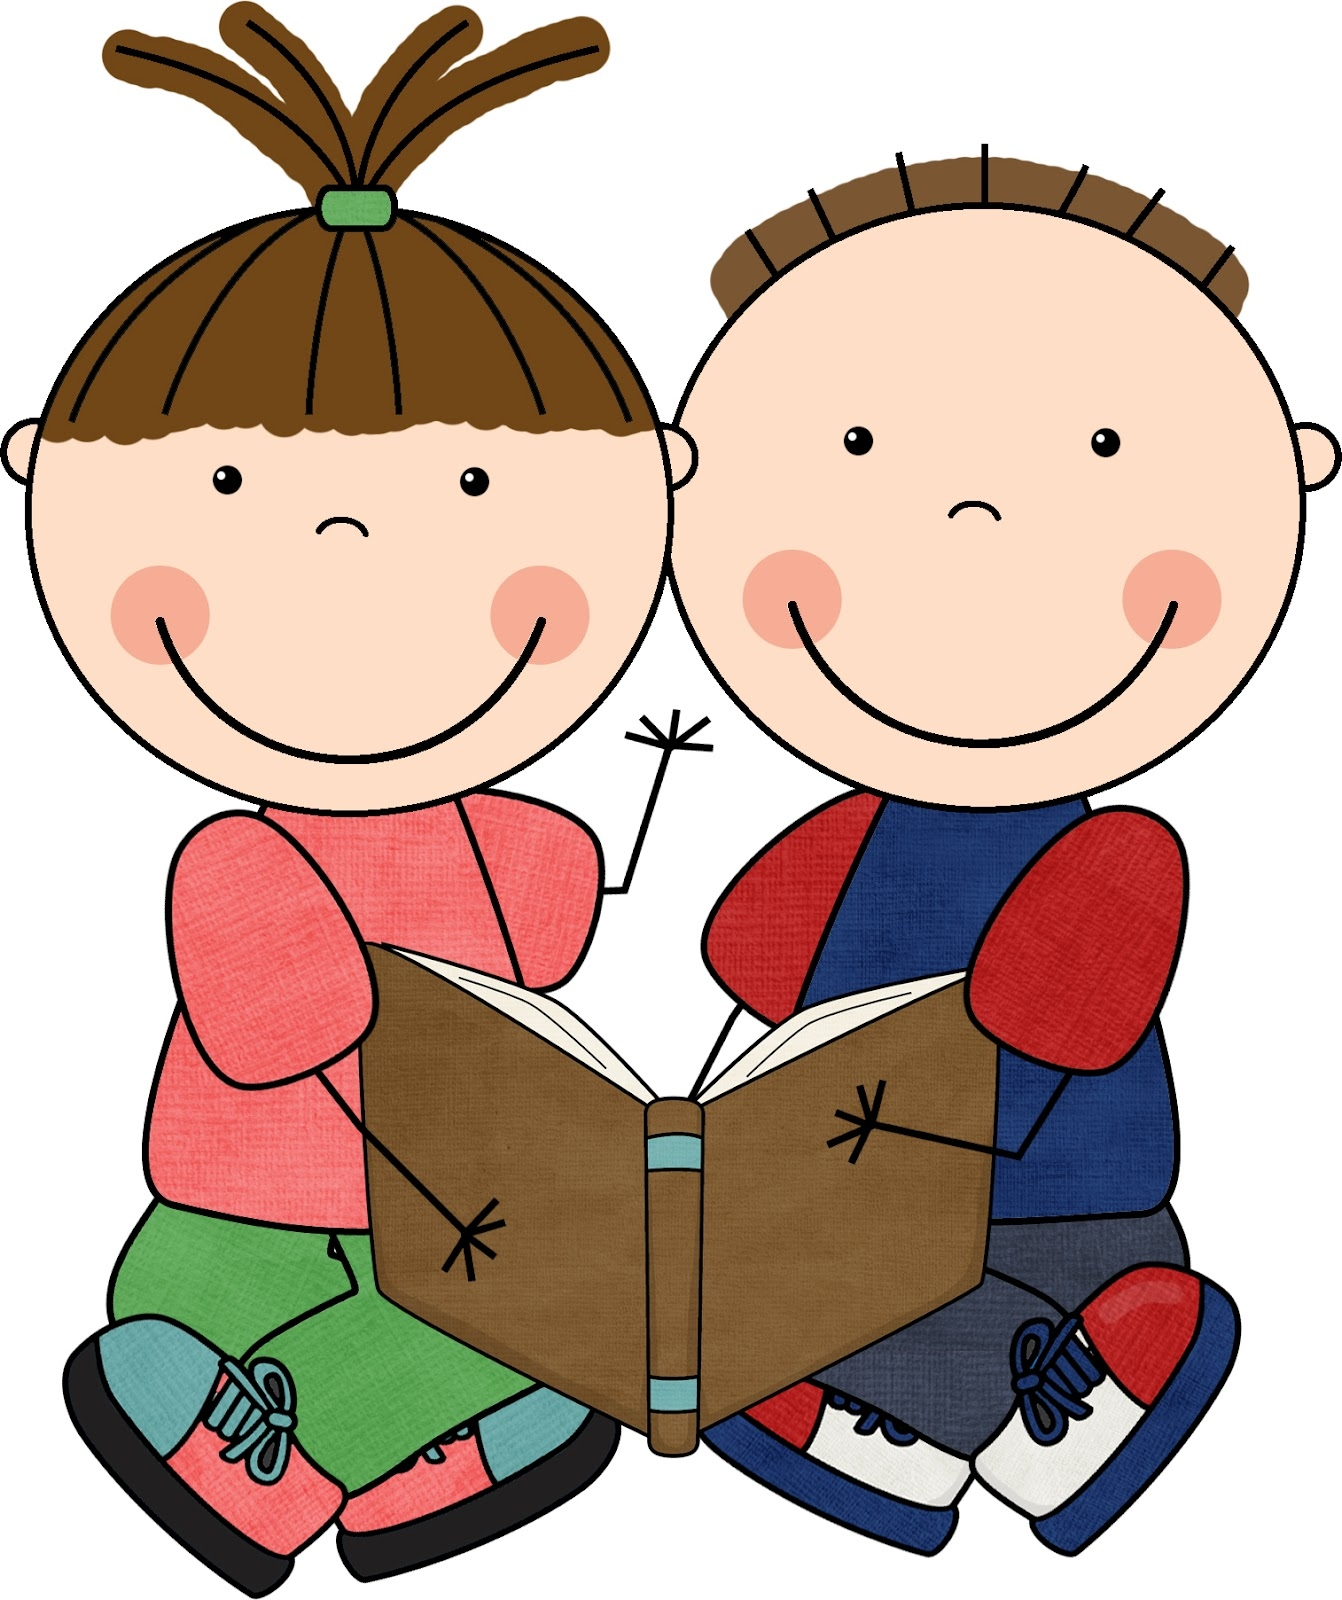 Kids being kind clipart 5 » Clipart Station.